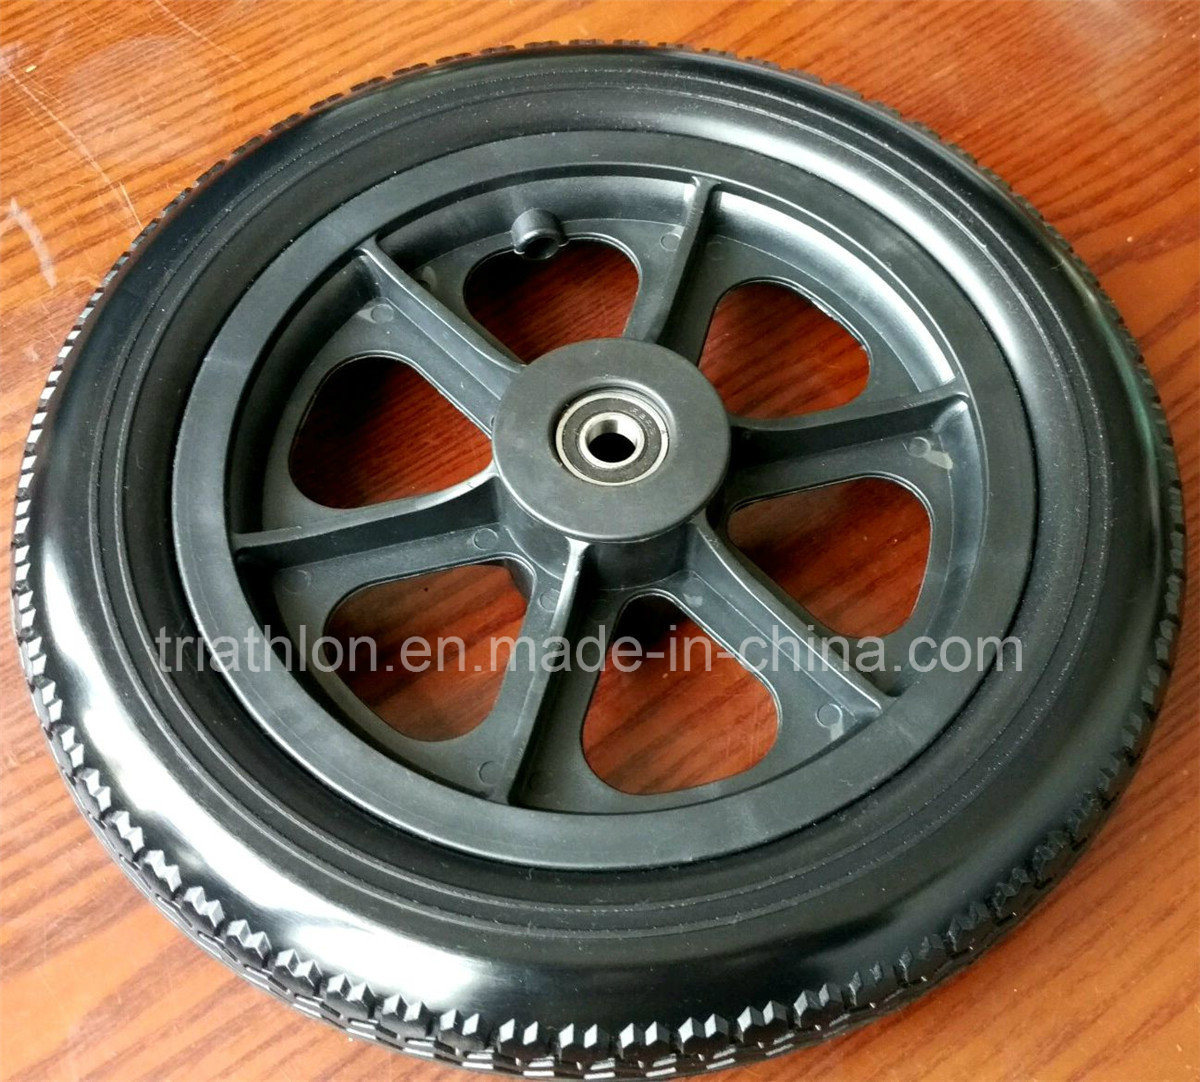 "8"" 9"" 10"" 12"" 14"" 16"" 18"" 20"" 22"" 24"" 26"" Flat Free Solid Rubber Wheel"